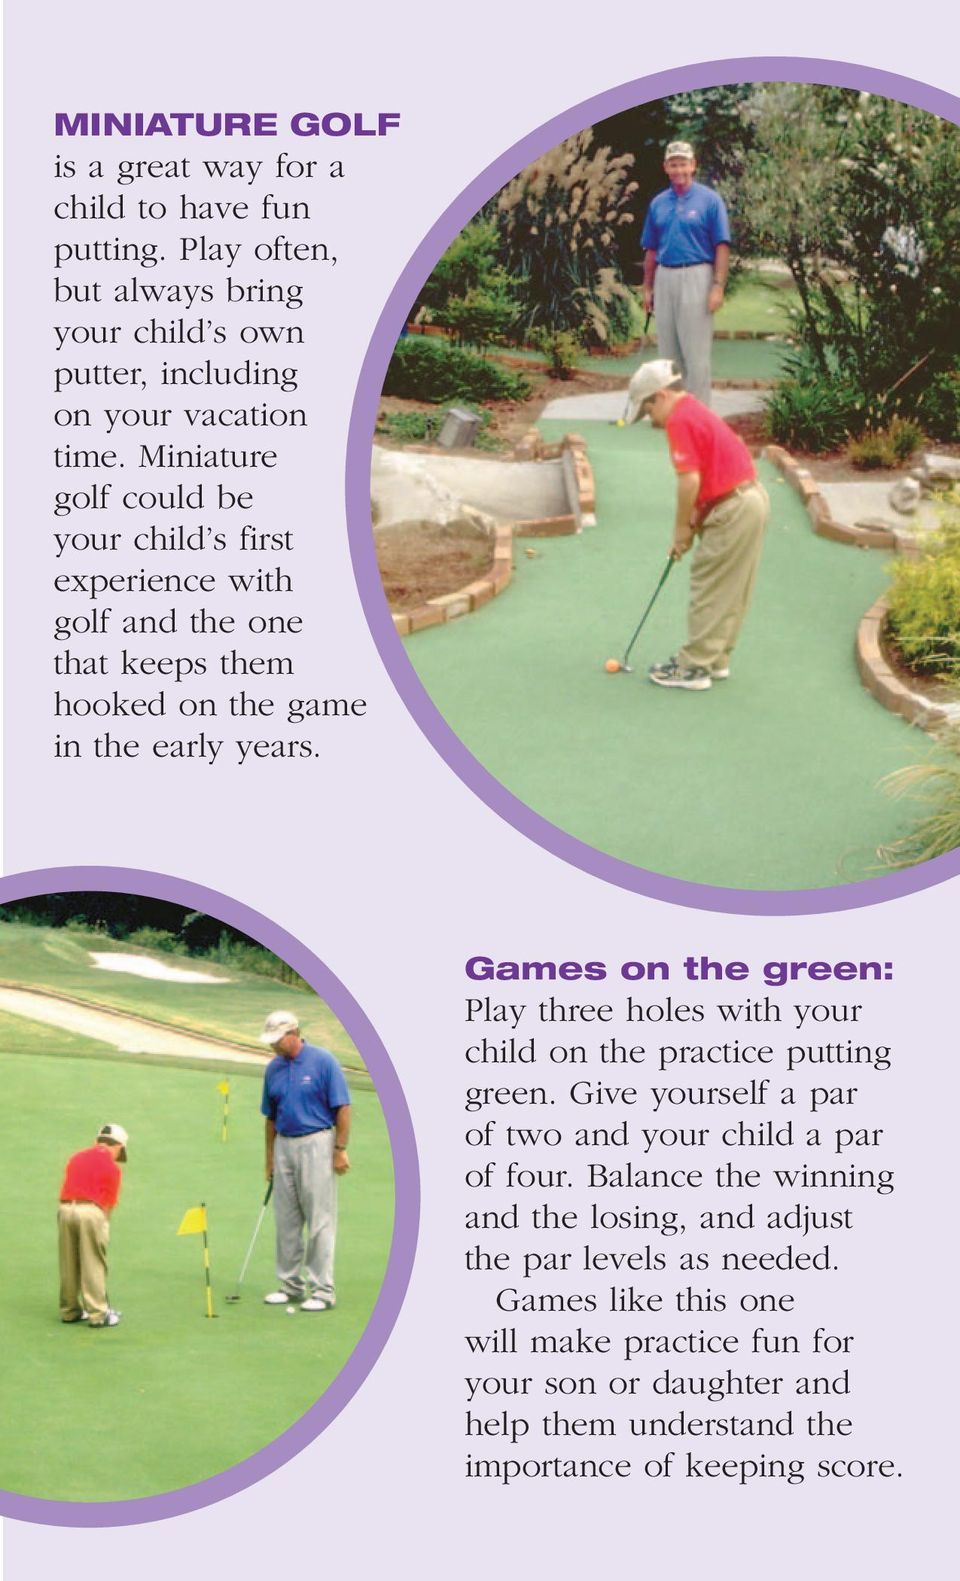 Games on the green: Play three holes with your child on the practice putting green. Give yourself a par of two and your child a par of four.